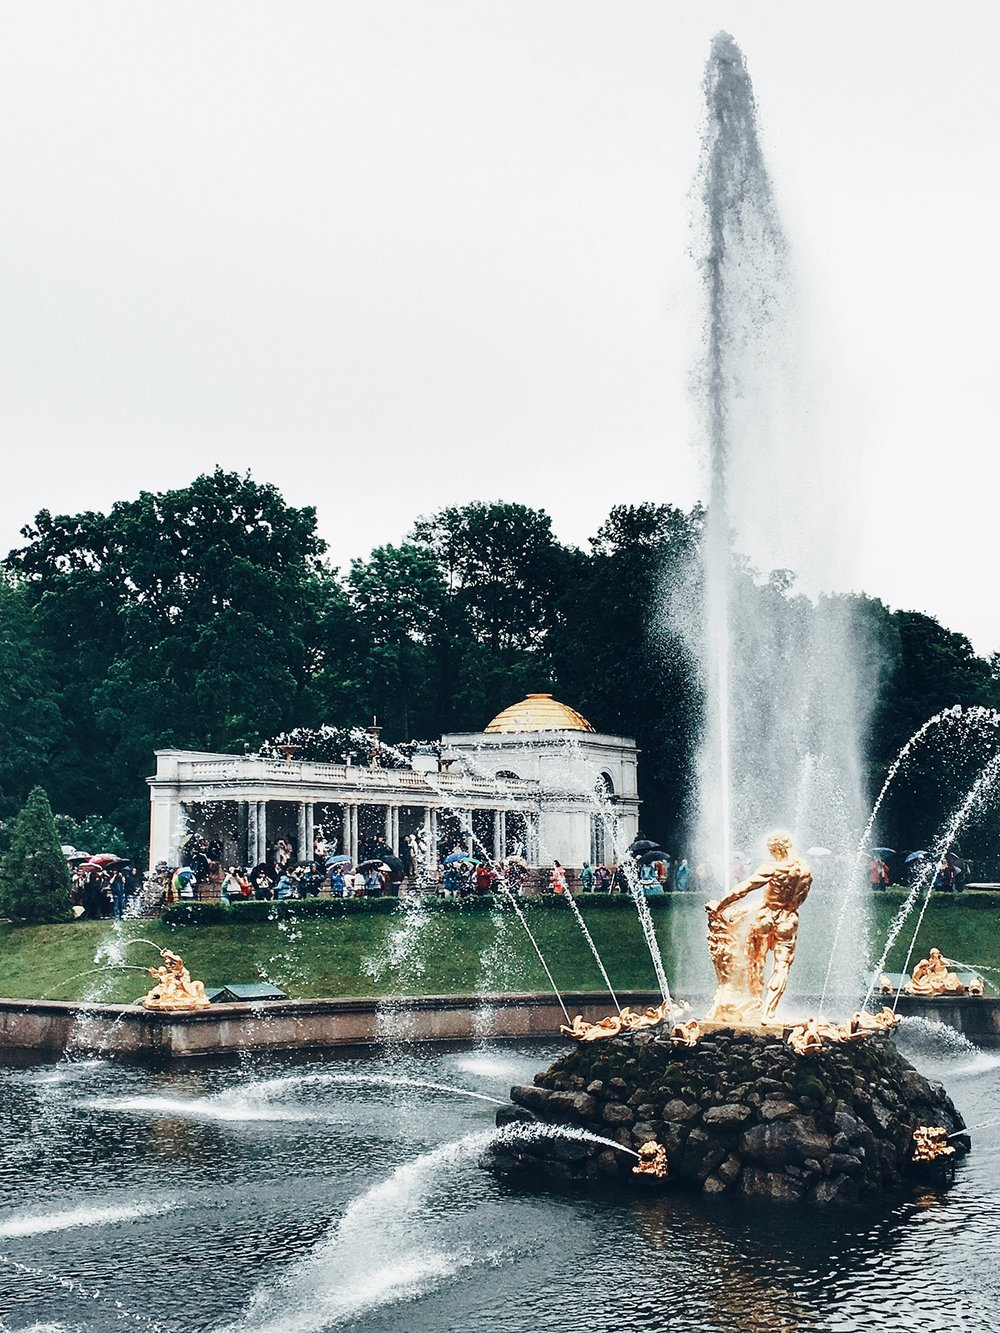 The Samson Fountain, Grand Cascade (St. Petersburg, Russia)